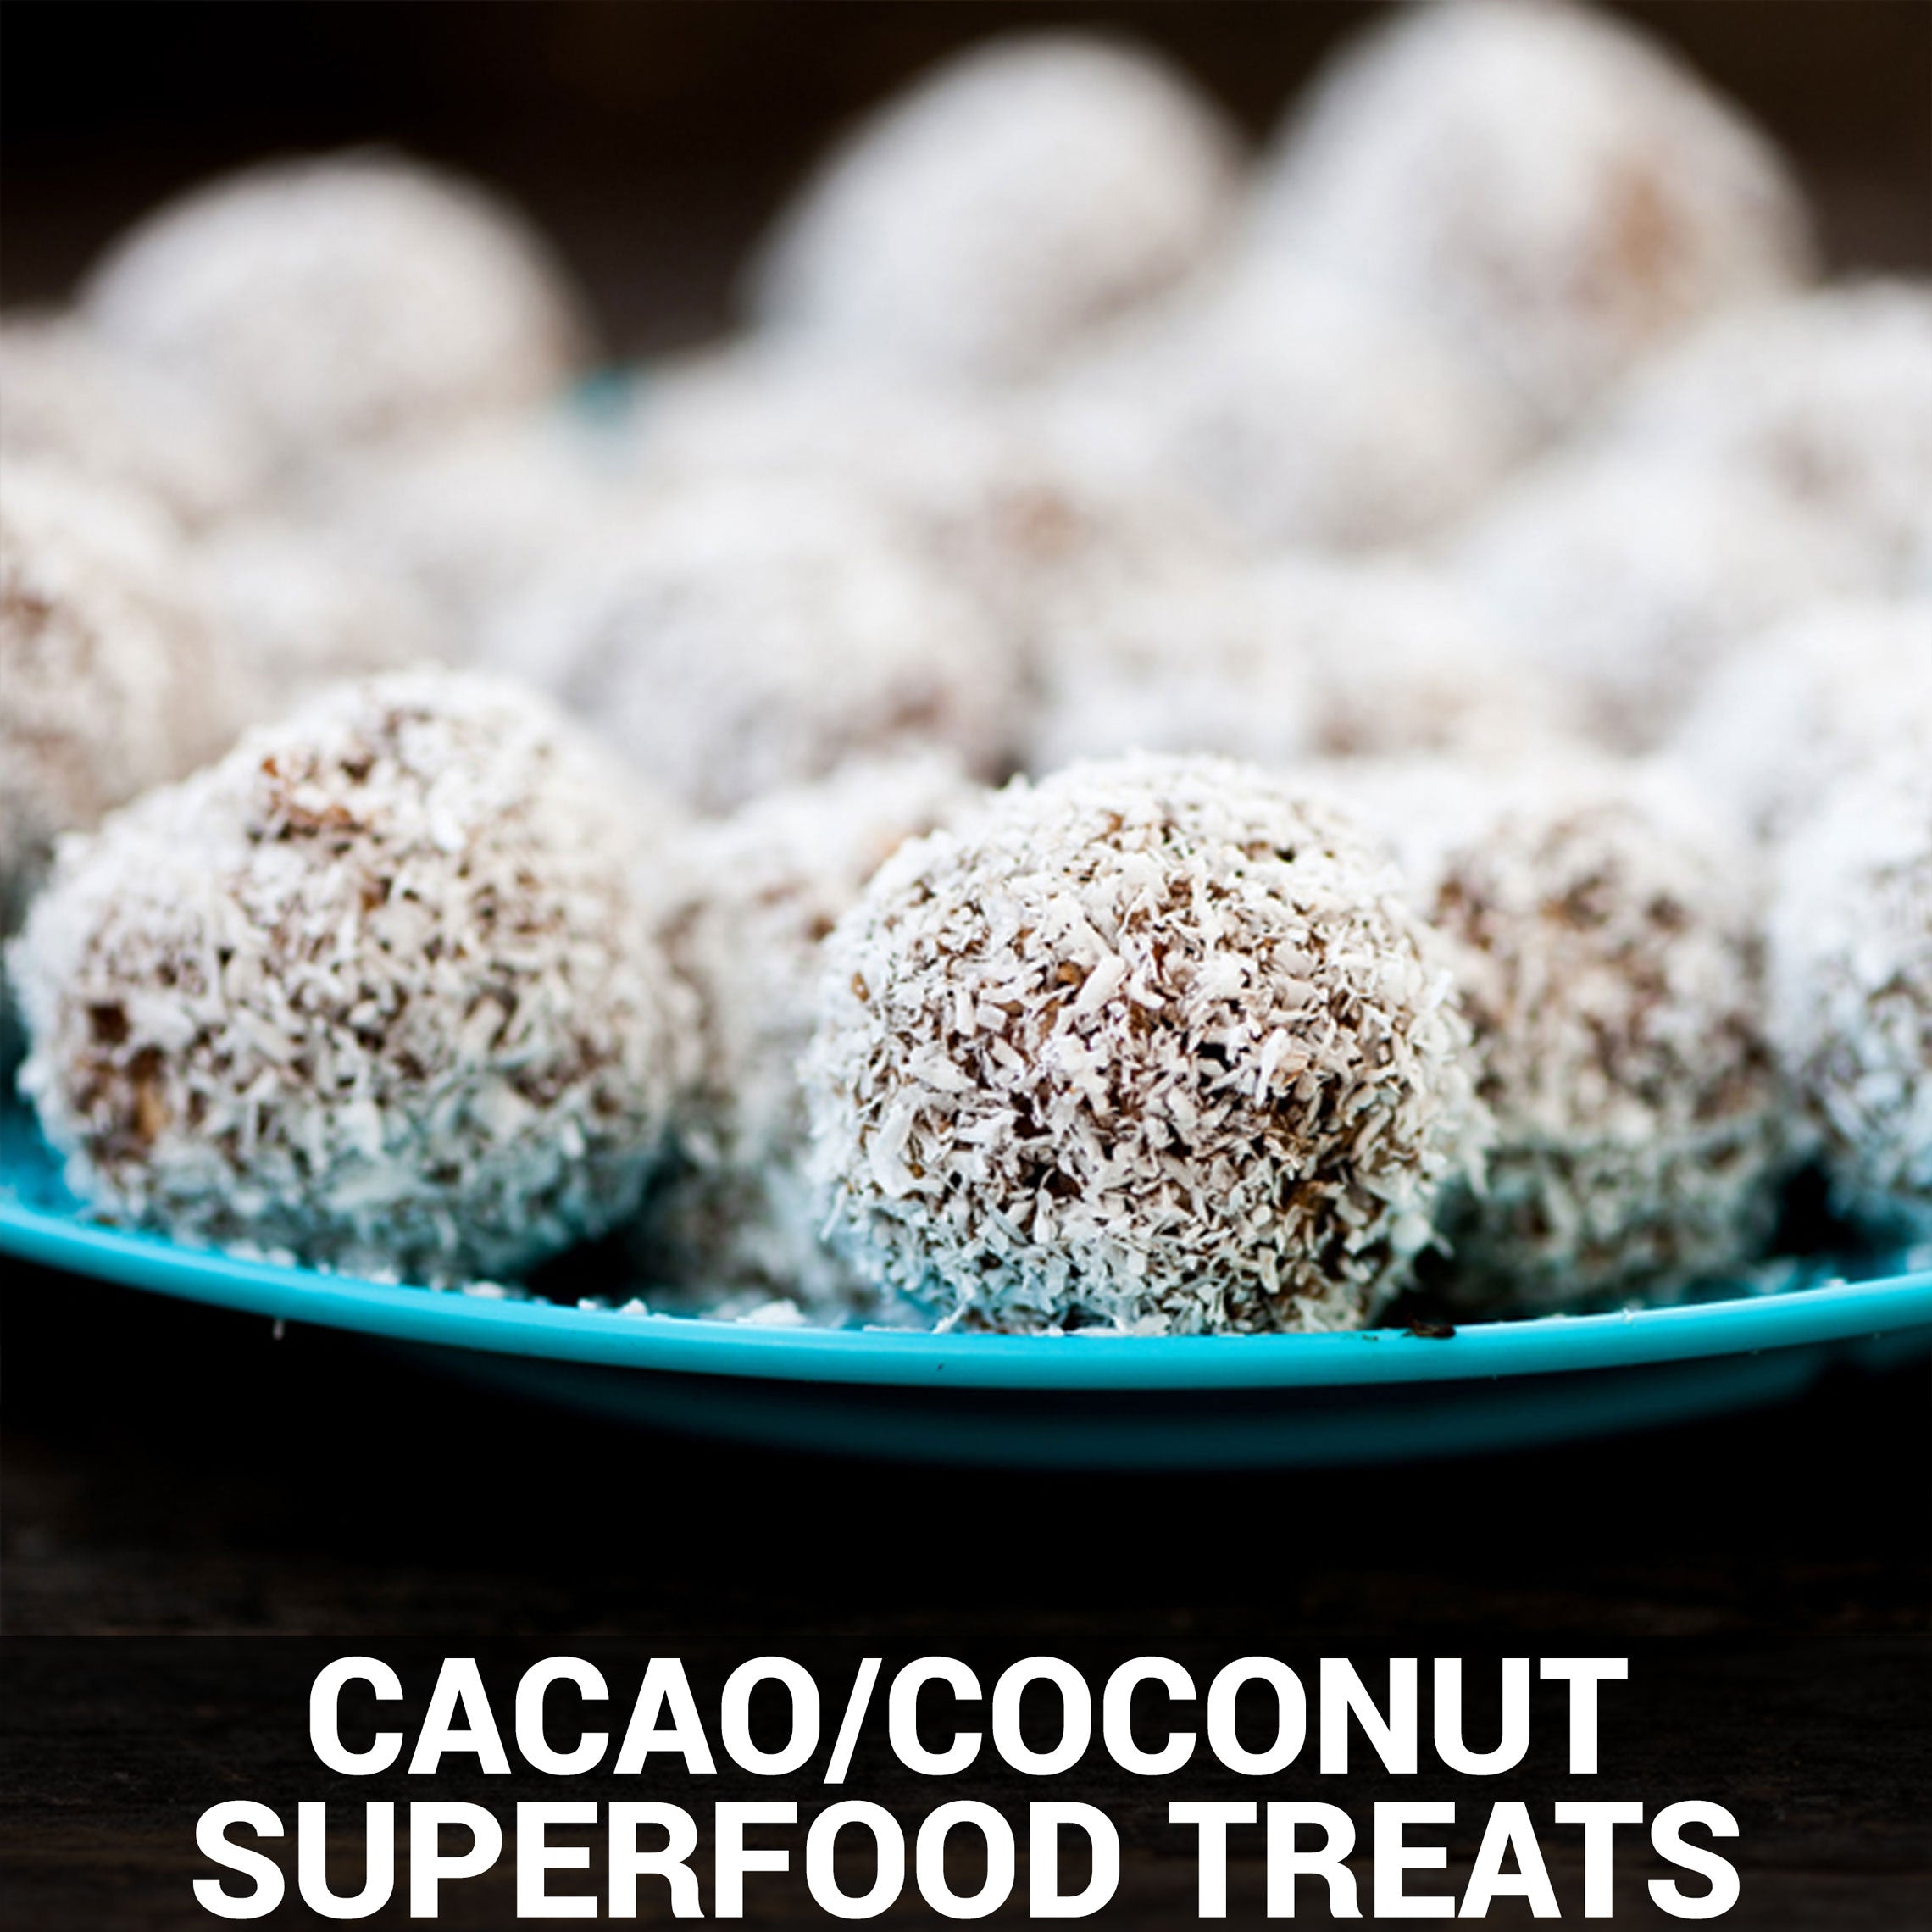 Cacao/Coconut Superfood Treats Recipe - Foods Alive